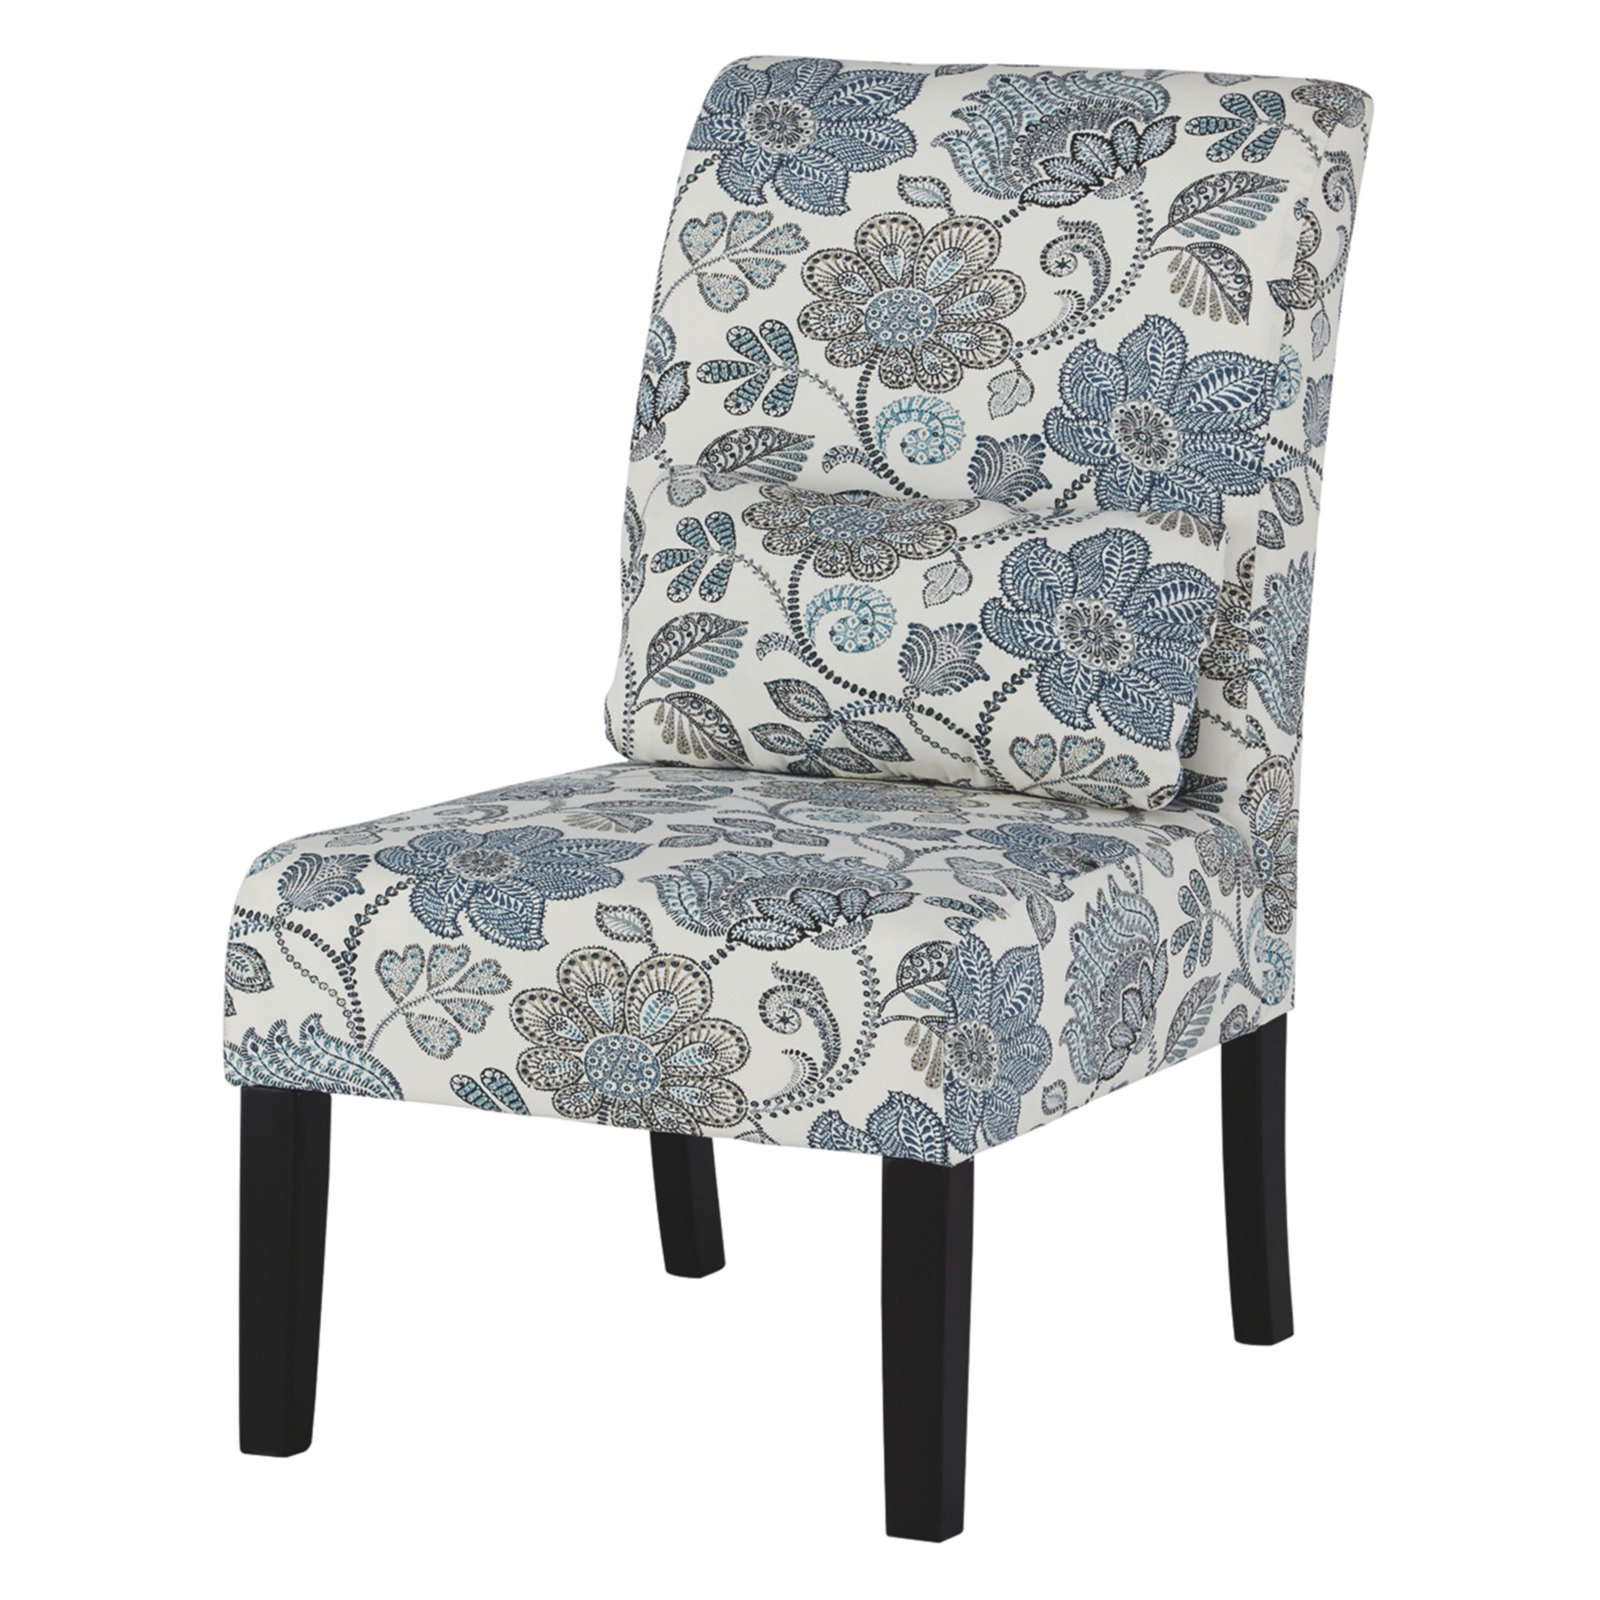 Signature Design by Ashley Sesto Accent Chair